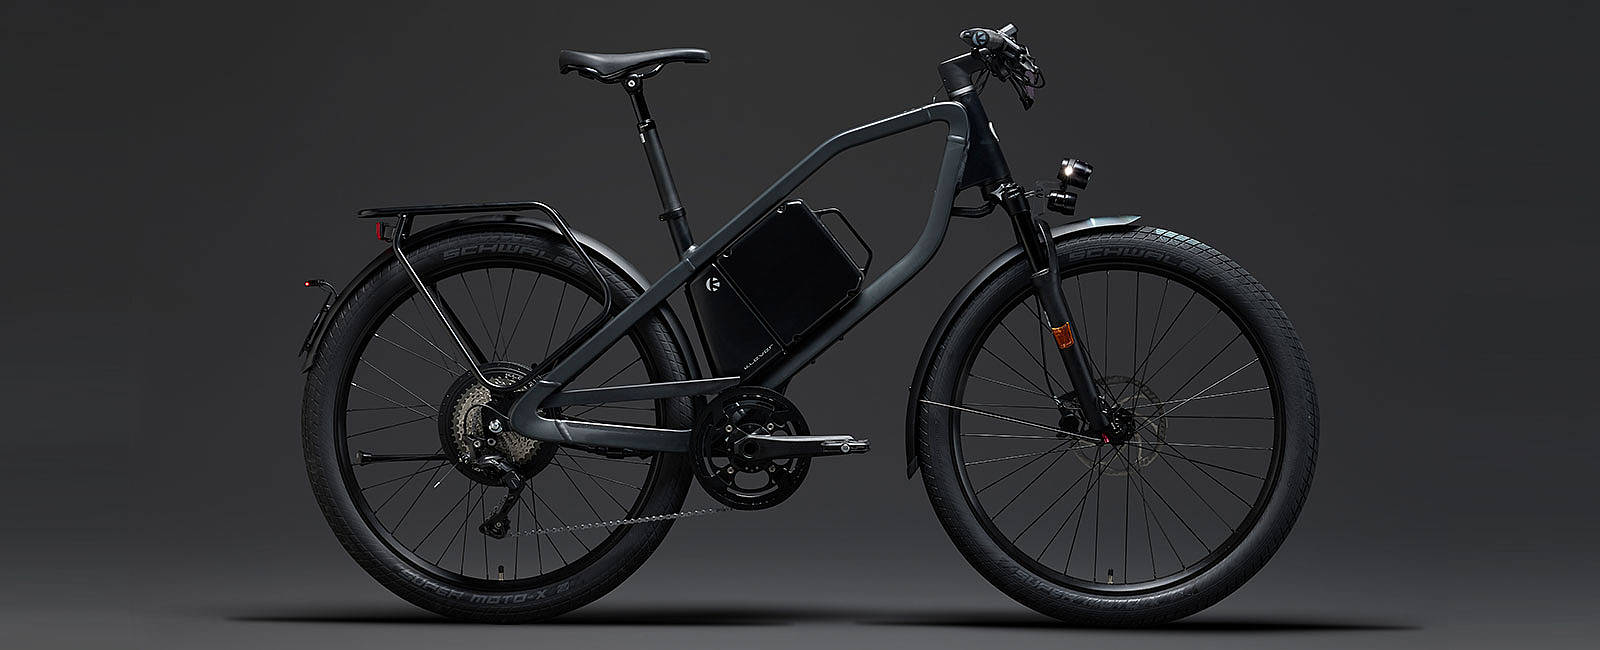 Klever X Speed 2019 45km/h (business edition 2020)  20% korting